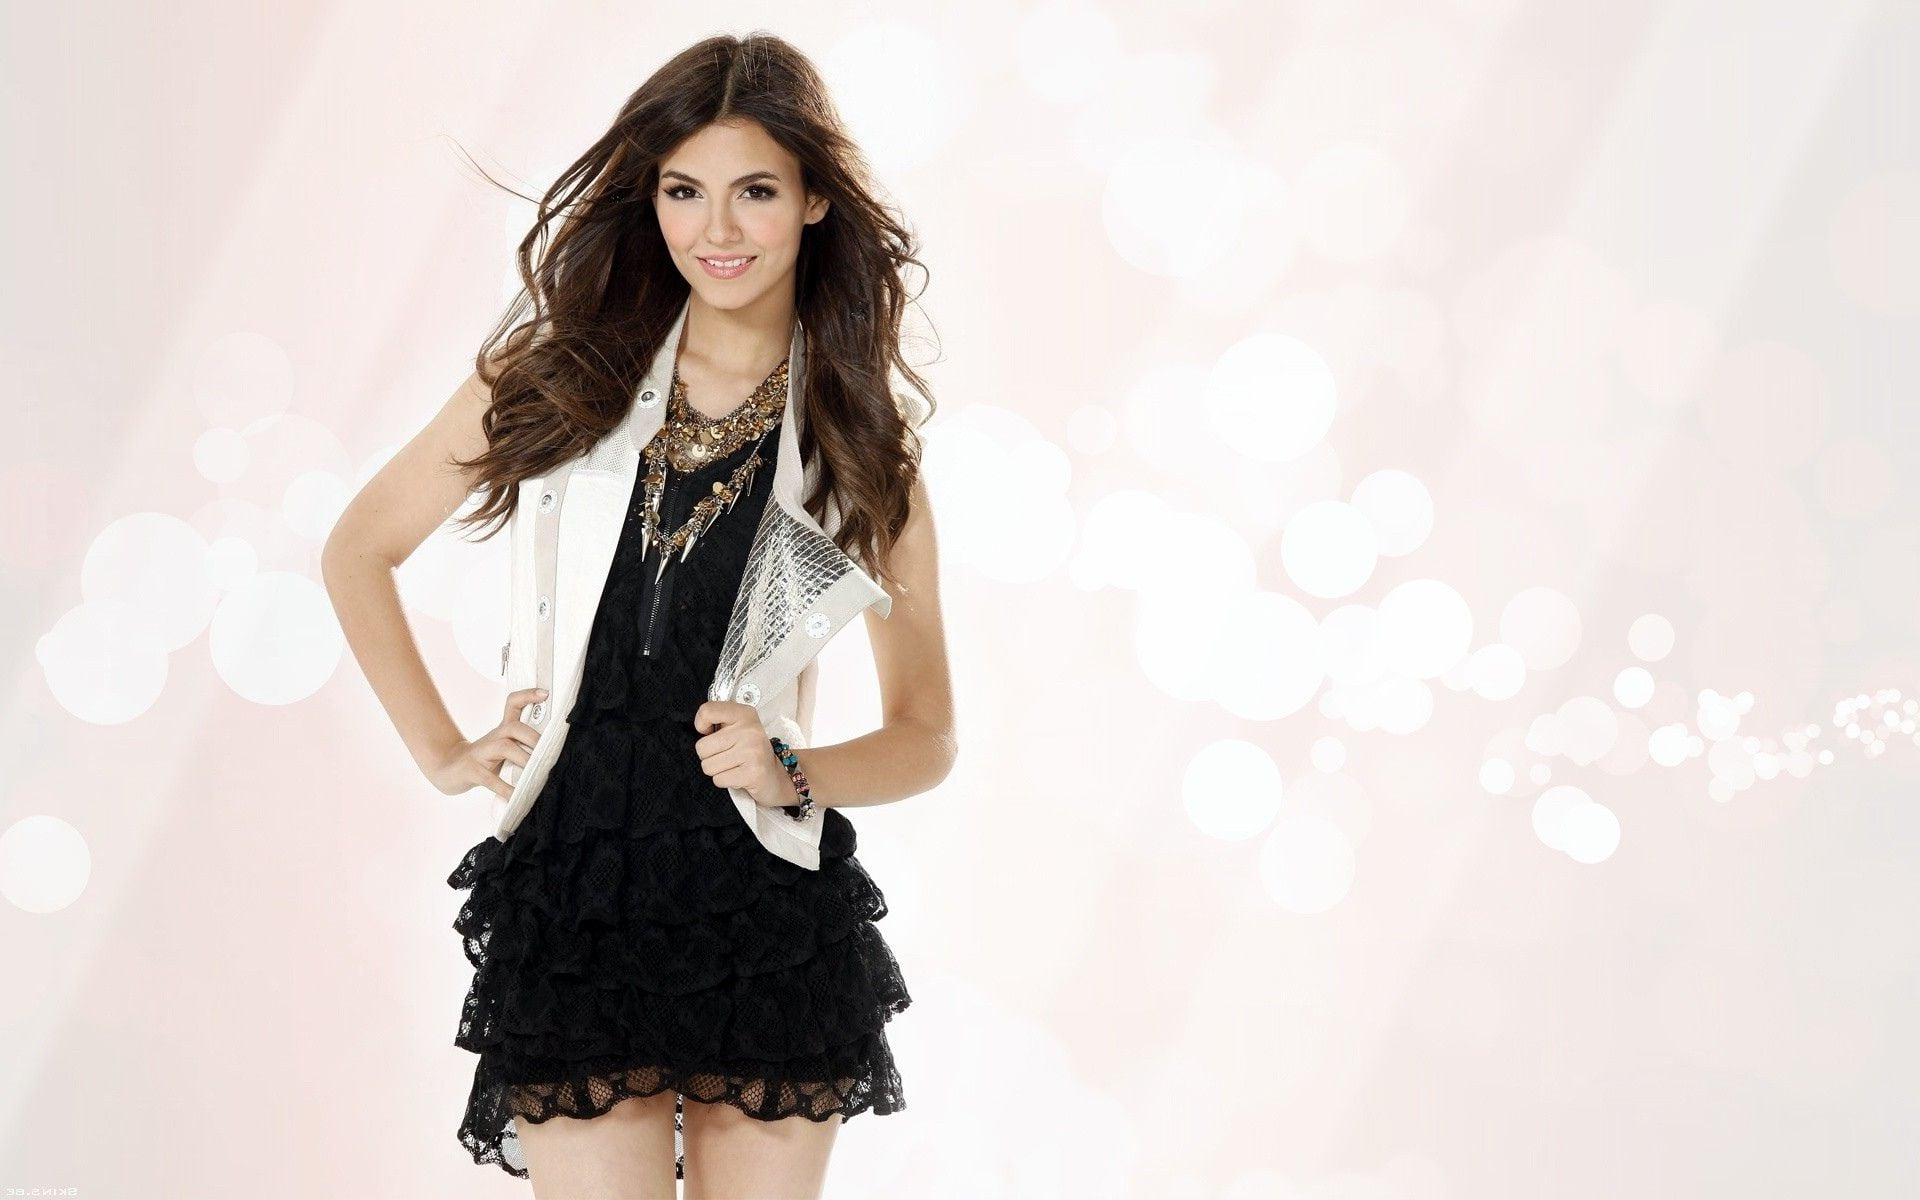 Cute Face Wallpaper For Iphone 35 Victoria Justice Wallpapers Hd Download